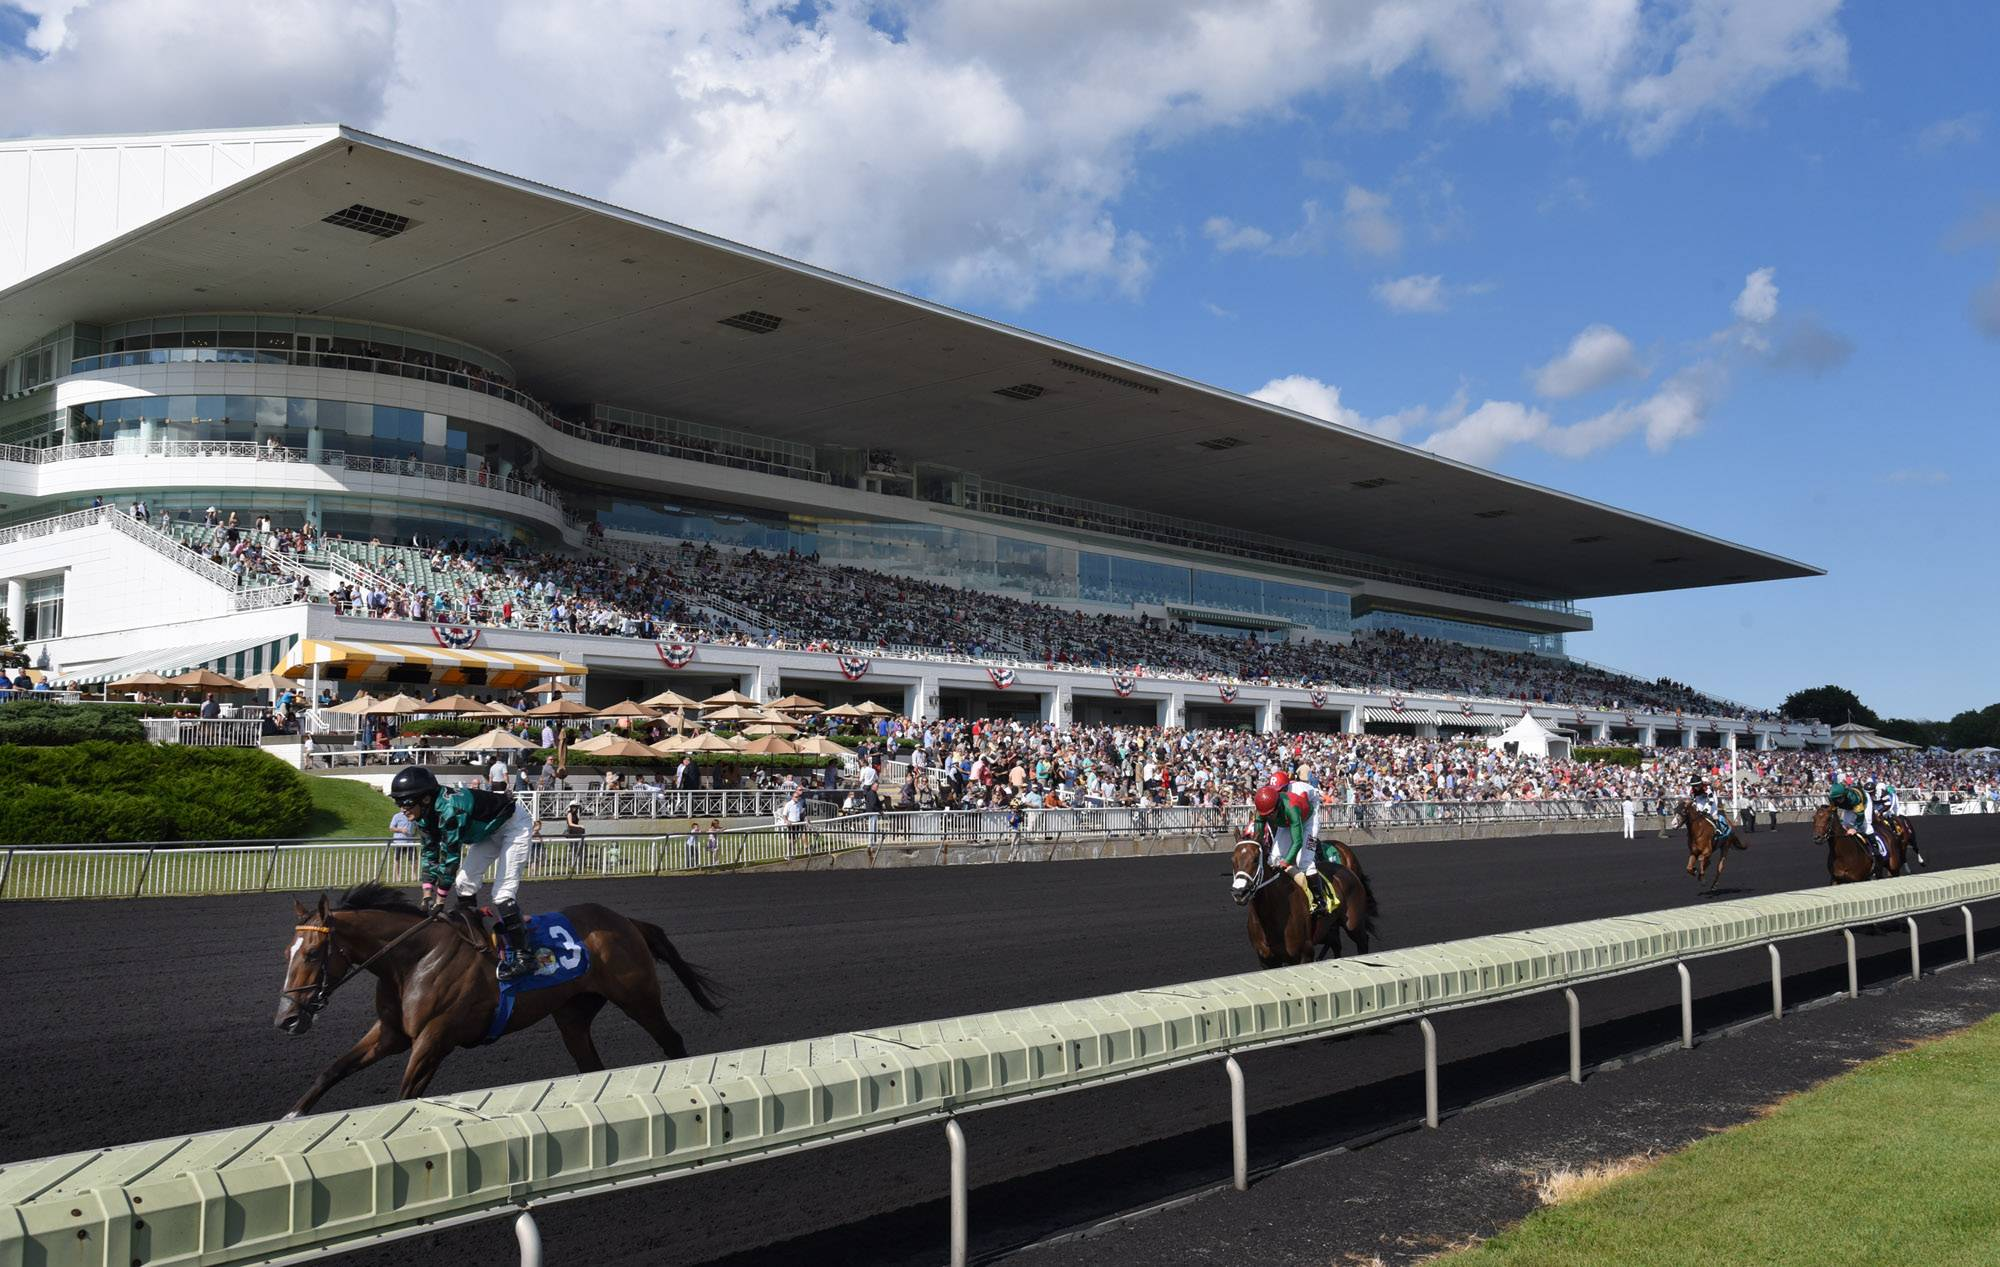 Even as Arlington Park owner Churchill Downs plans to buy Rivers Casino in Des Plaines to expand its gambling options in Illinois, officials are pondering the impact on the racecourse itself.